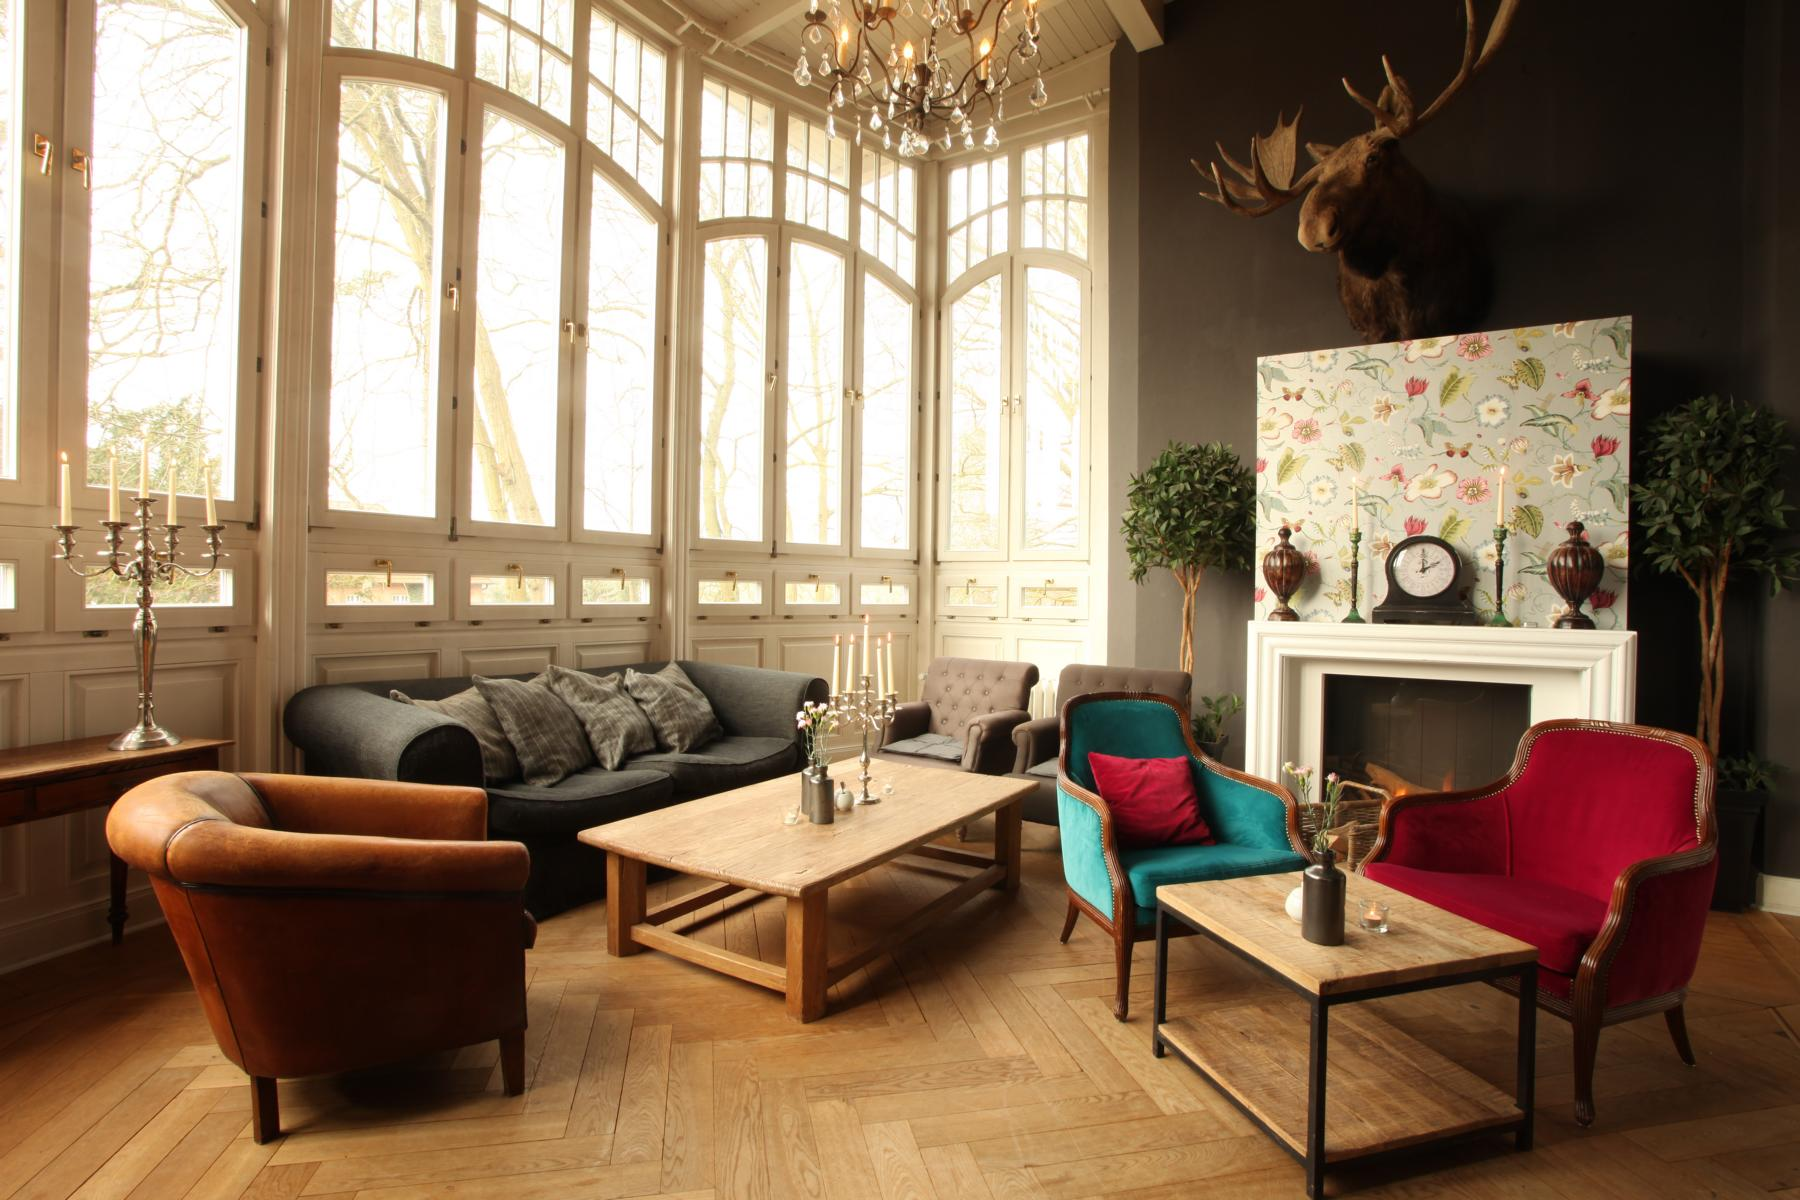 kamin im wintergarten schloss basthorst crivitz. Black Bedroom Furniture Sets. Home Design Ideas